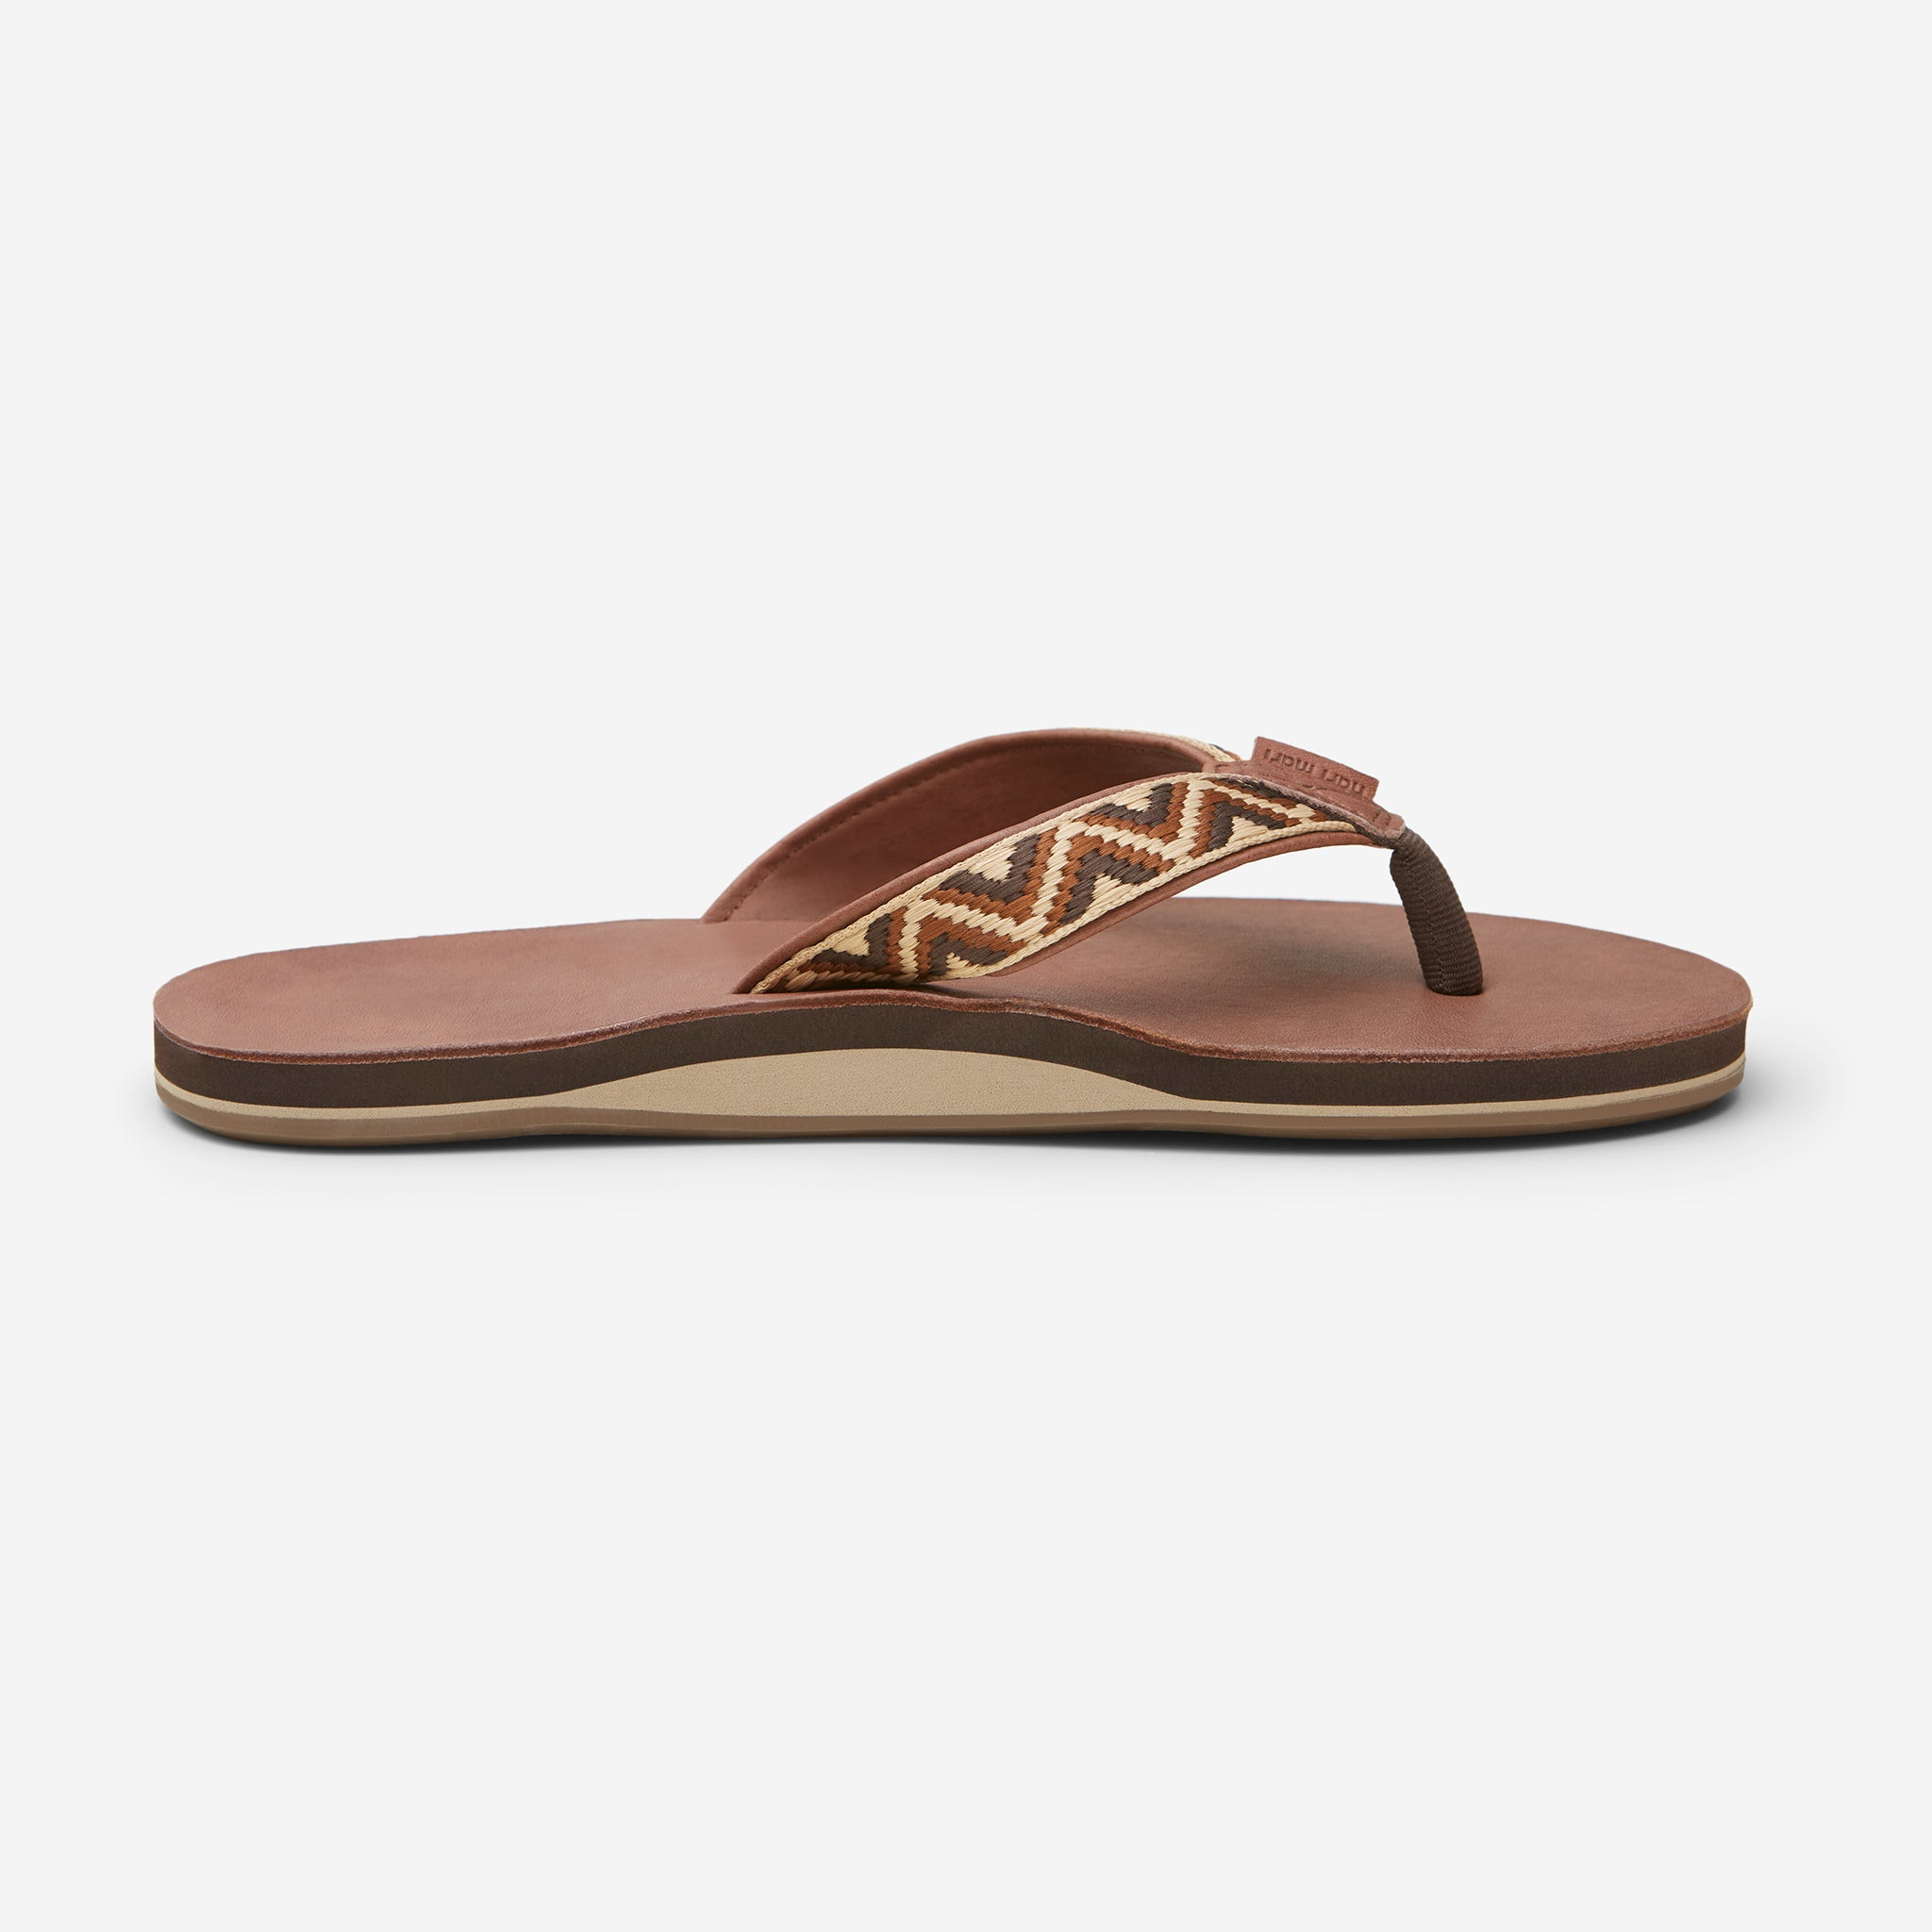 side profile of Hari Mari Men'a Fields Camino Flip Flops in chocolate/multi on white background